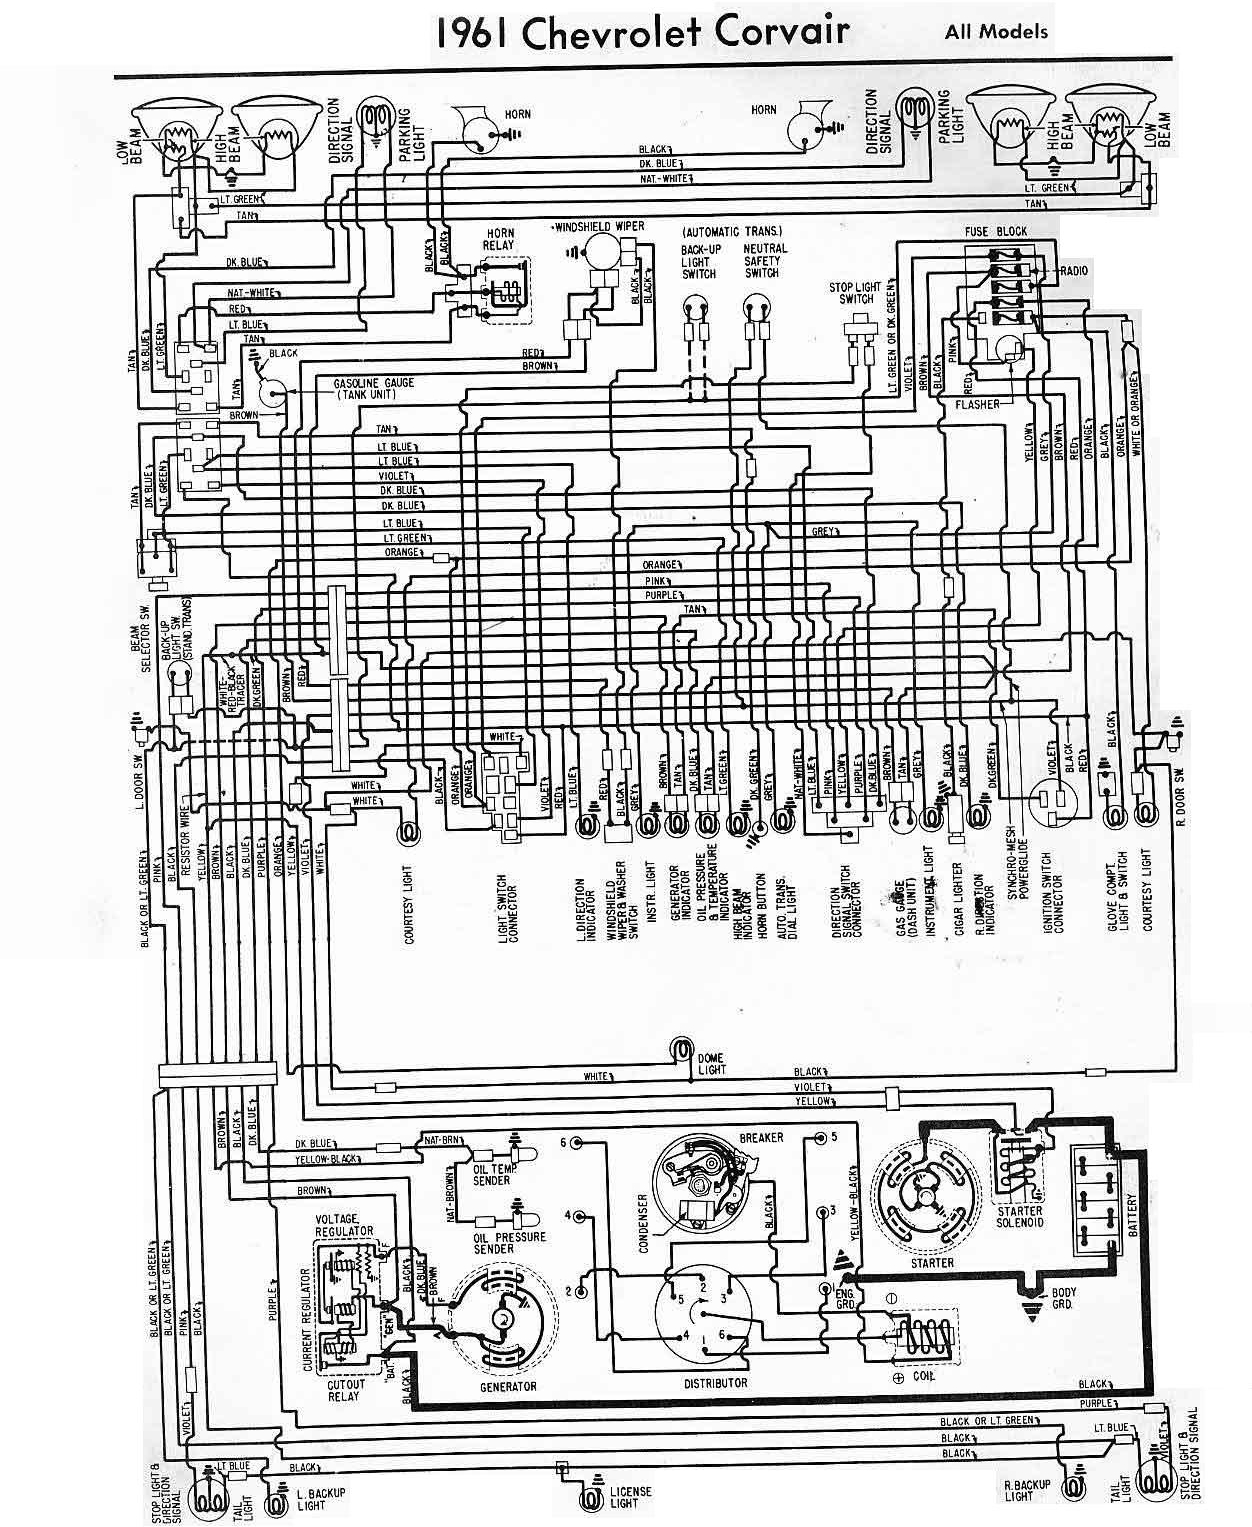 small resolution of 1961 corvair wiring diagram free wiring diagram for you u2022 corvair motor diagram corvair wiring diagram